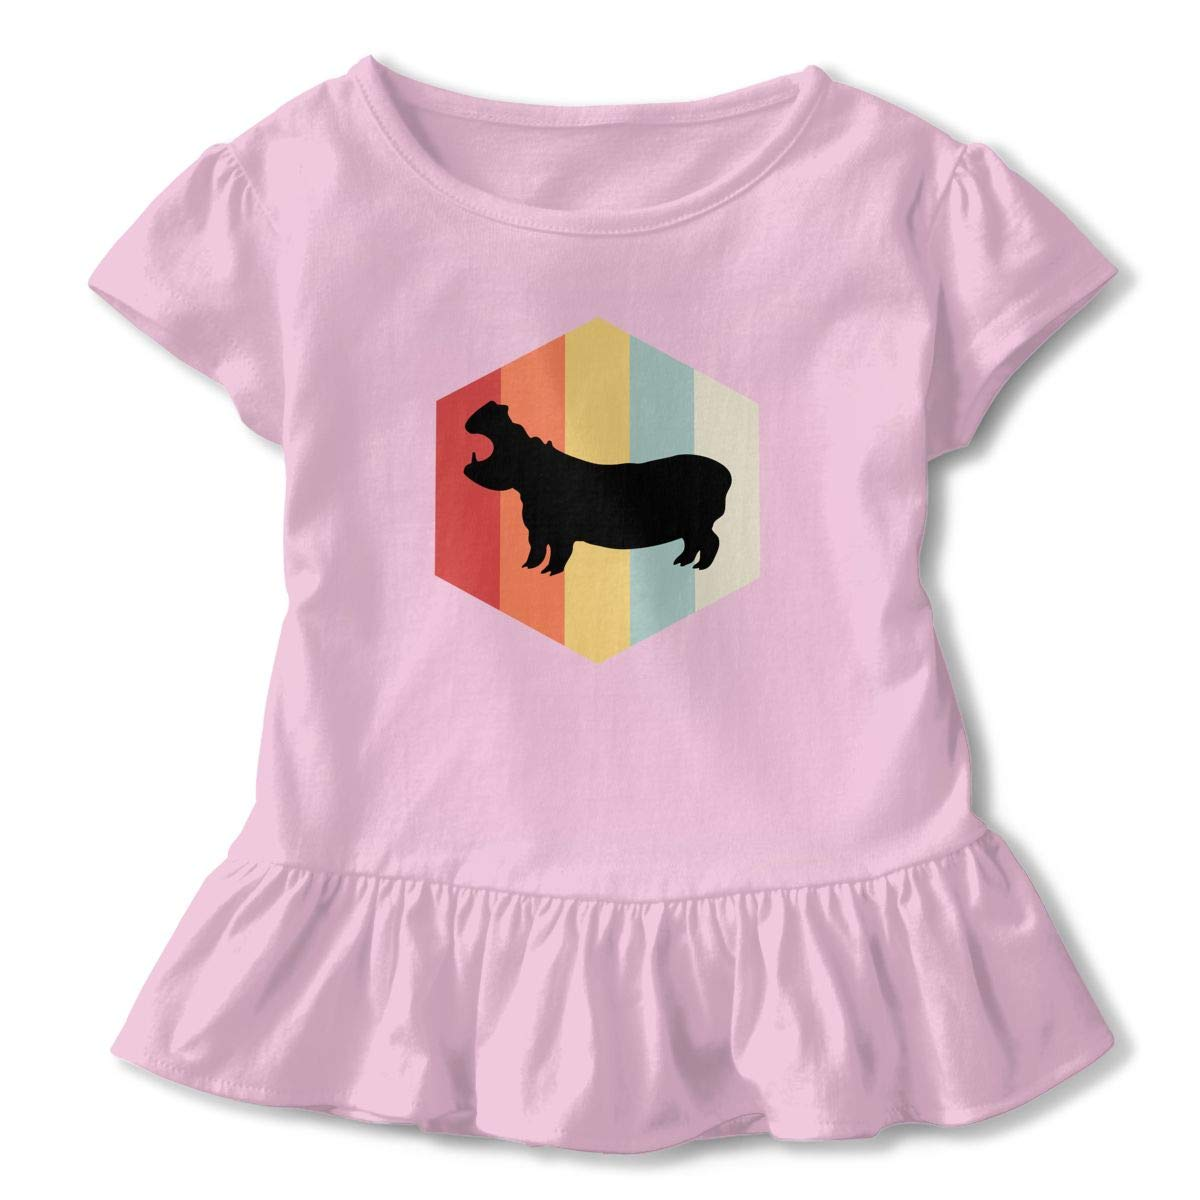 UAJAR Vintage 70s Hippo Baby Girls Short Sleeve Flounce Dress Comfortable Skirts T-Shirt